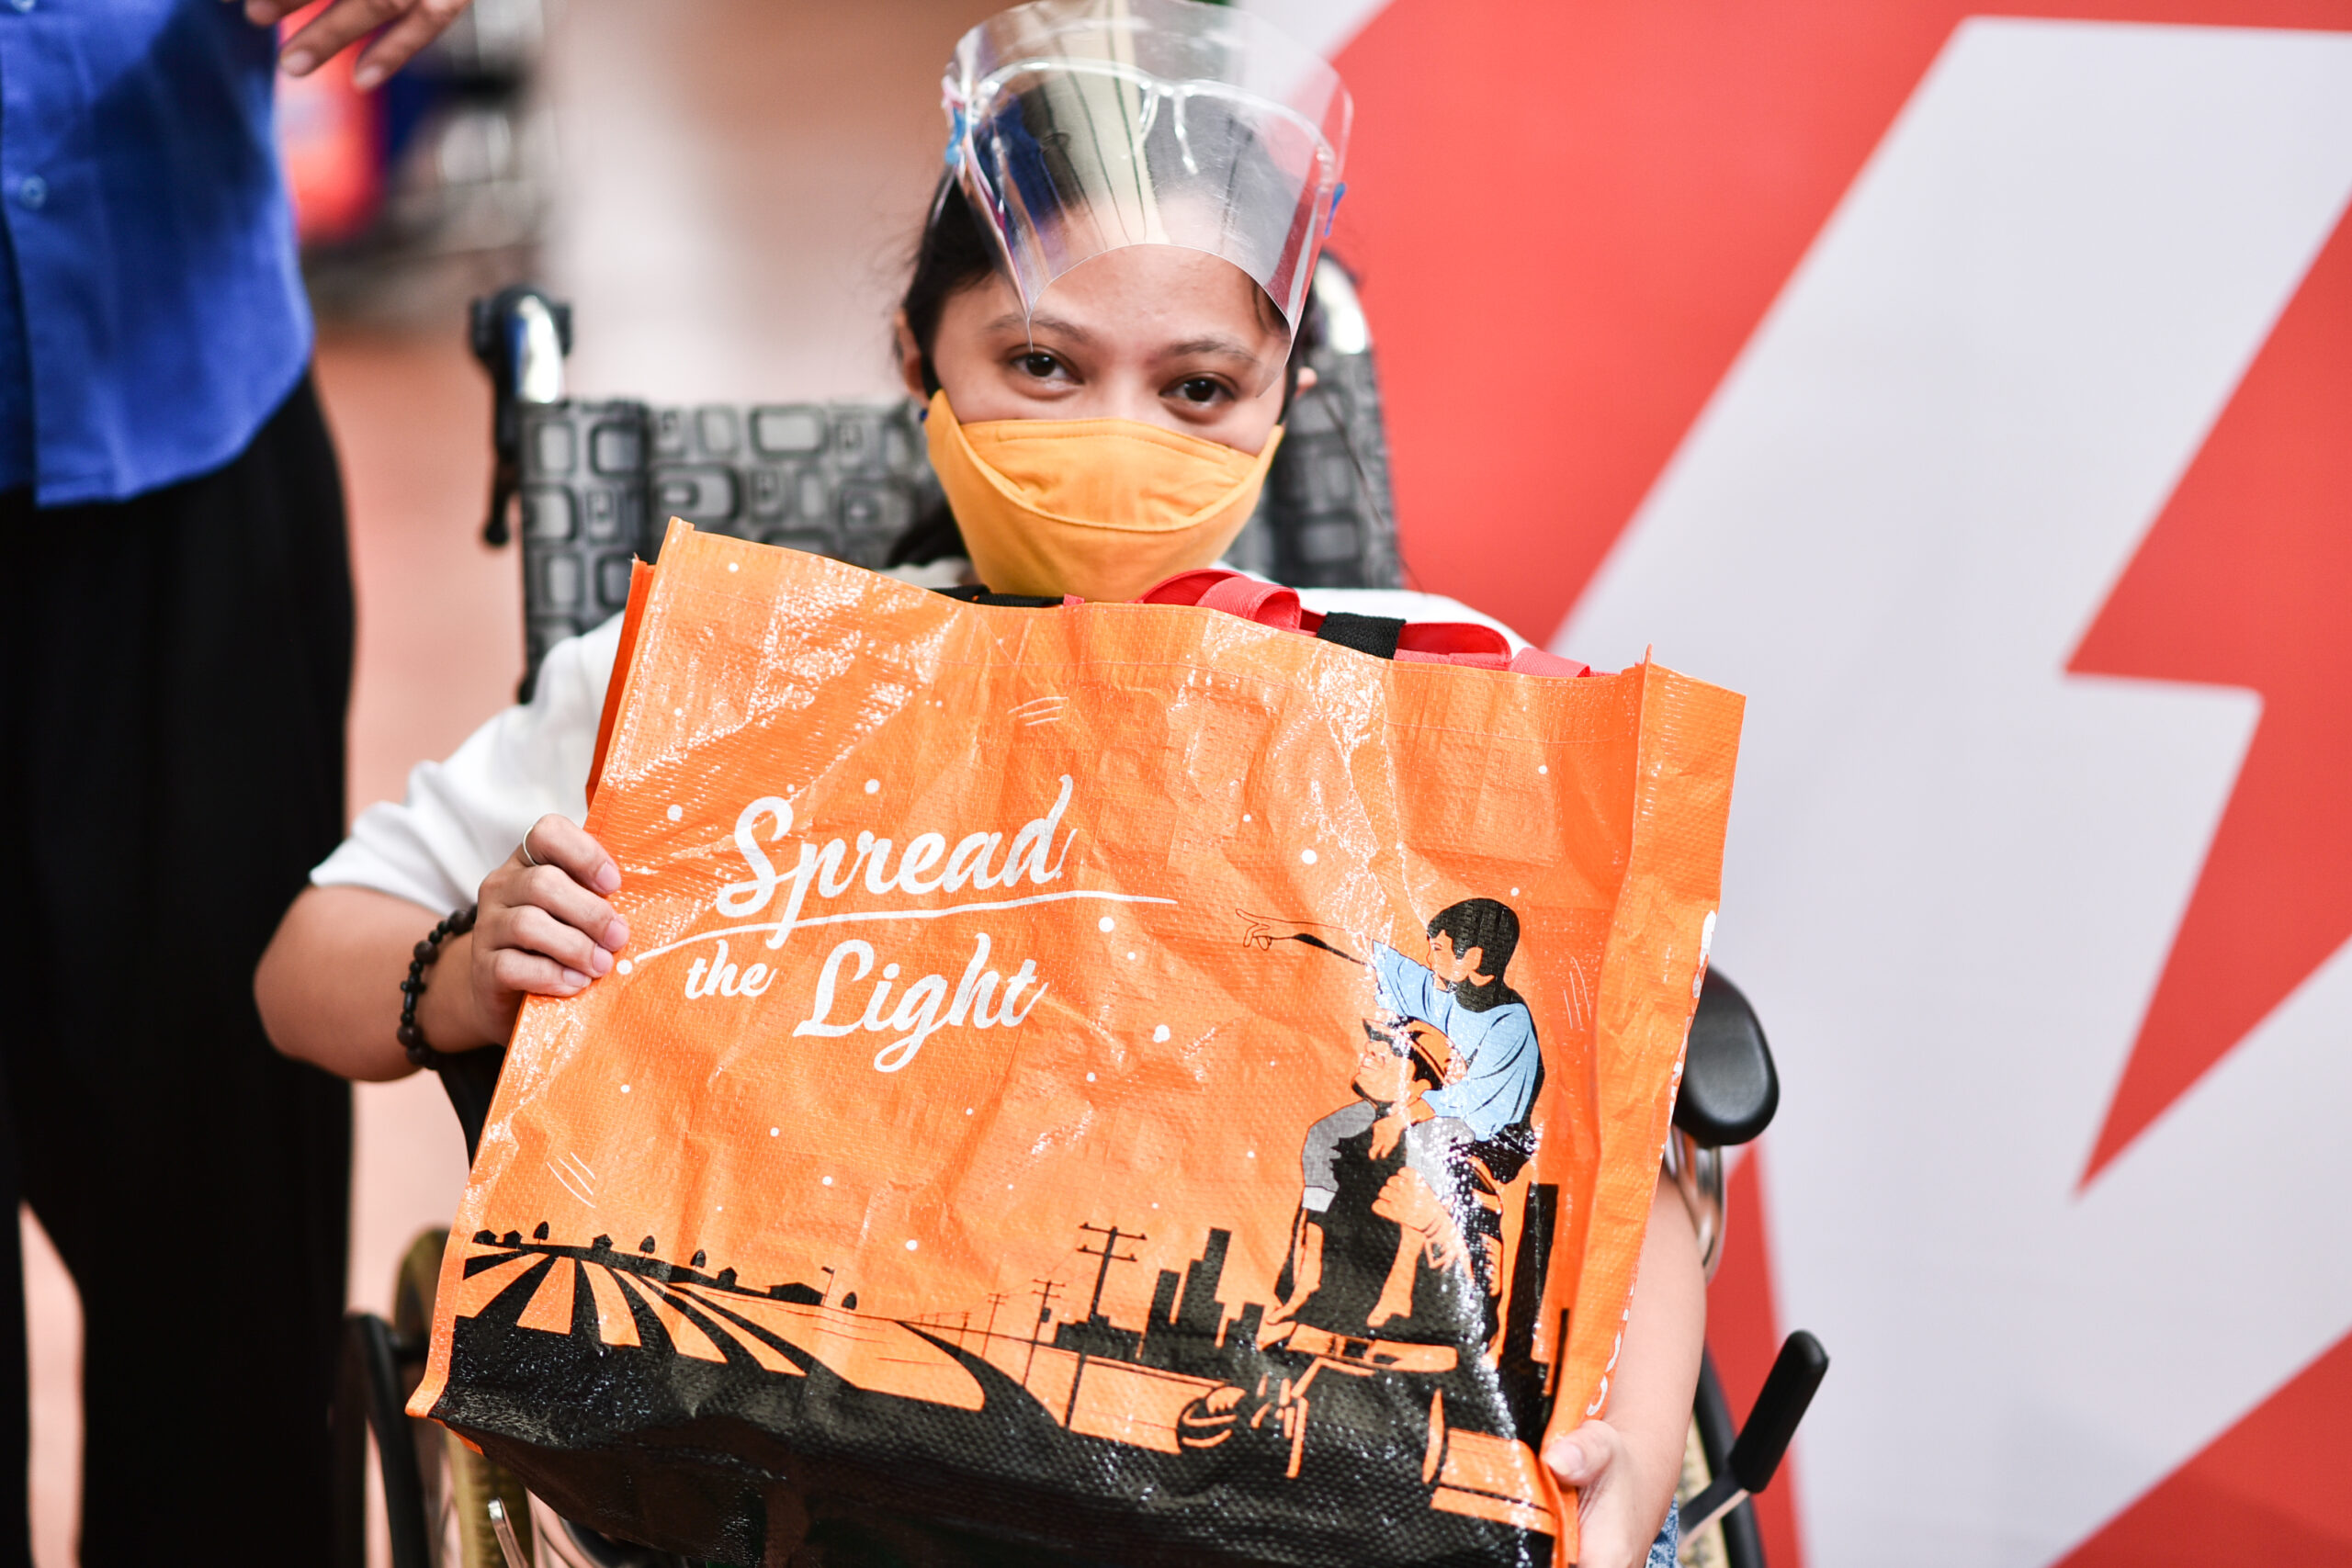 one meralco foundation donates noche buena packages to persons with disabilities